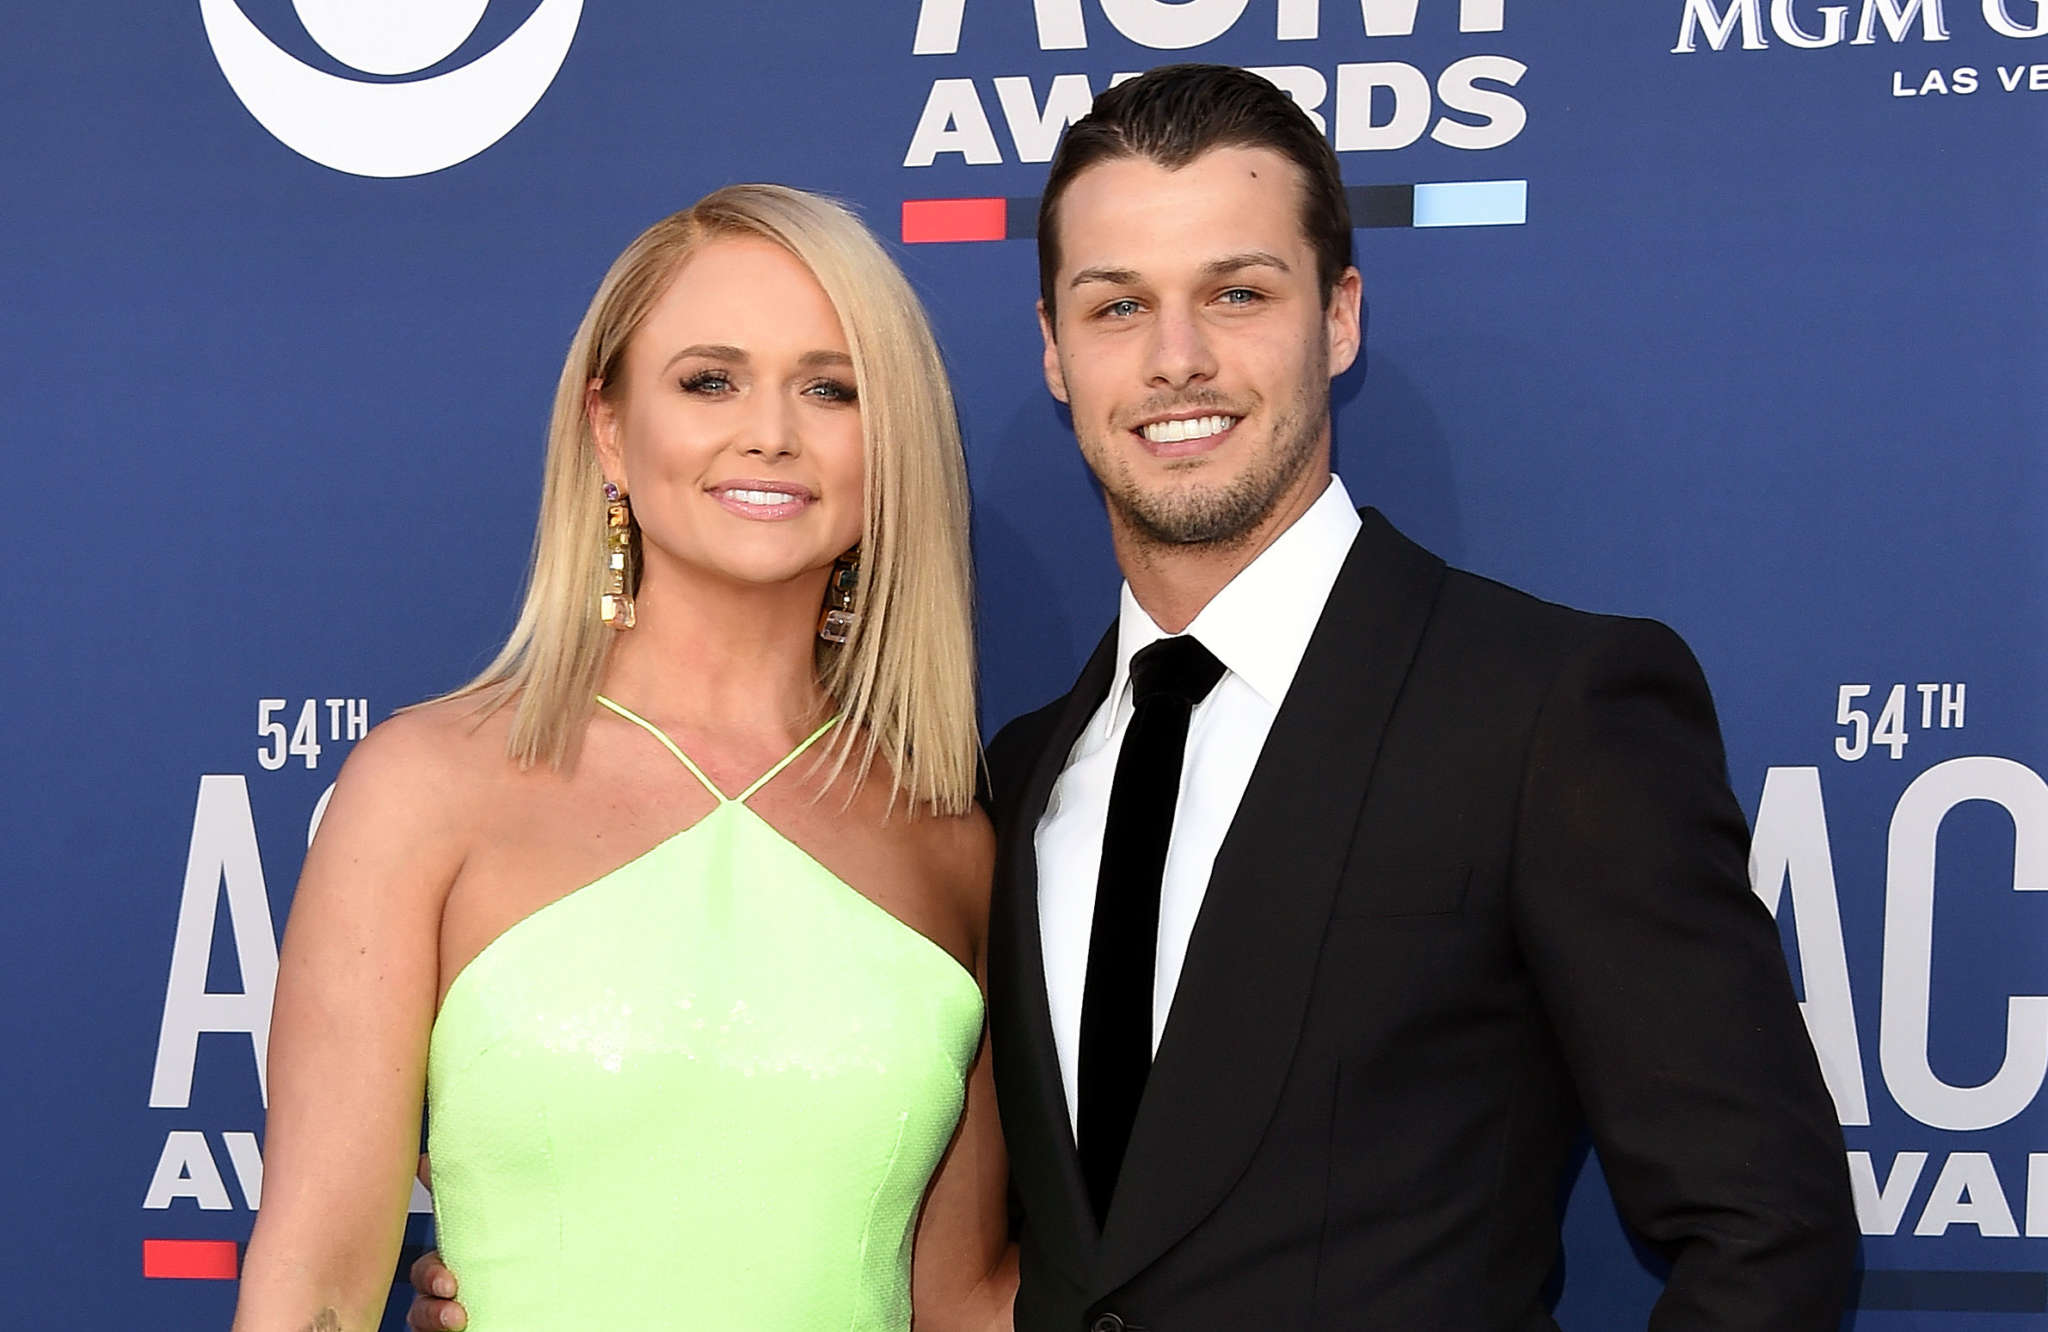 miranda-lambert-addresses-those-rumors-she-and-her-husband-divorced-only-4-months-after-tying-the-knot